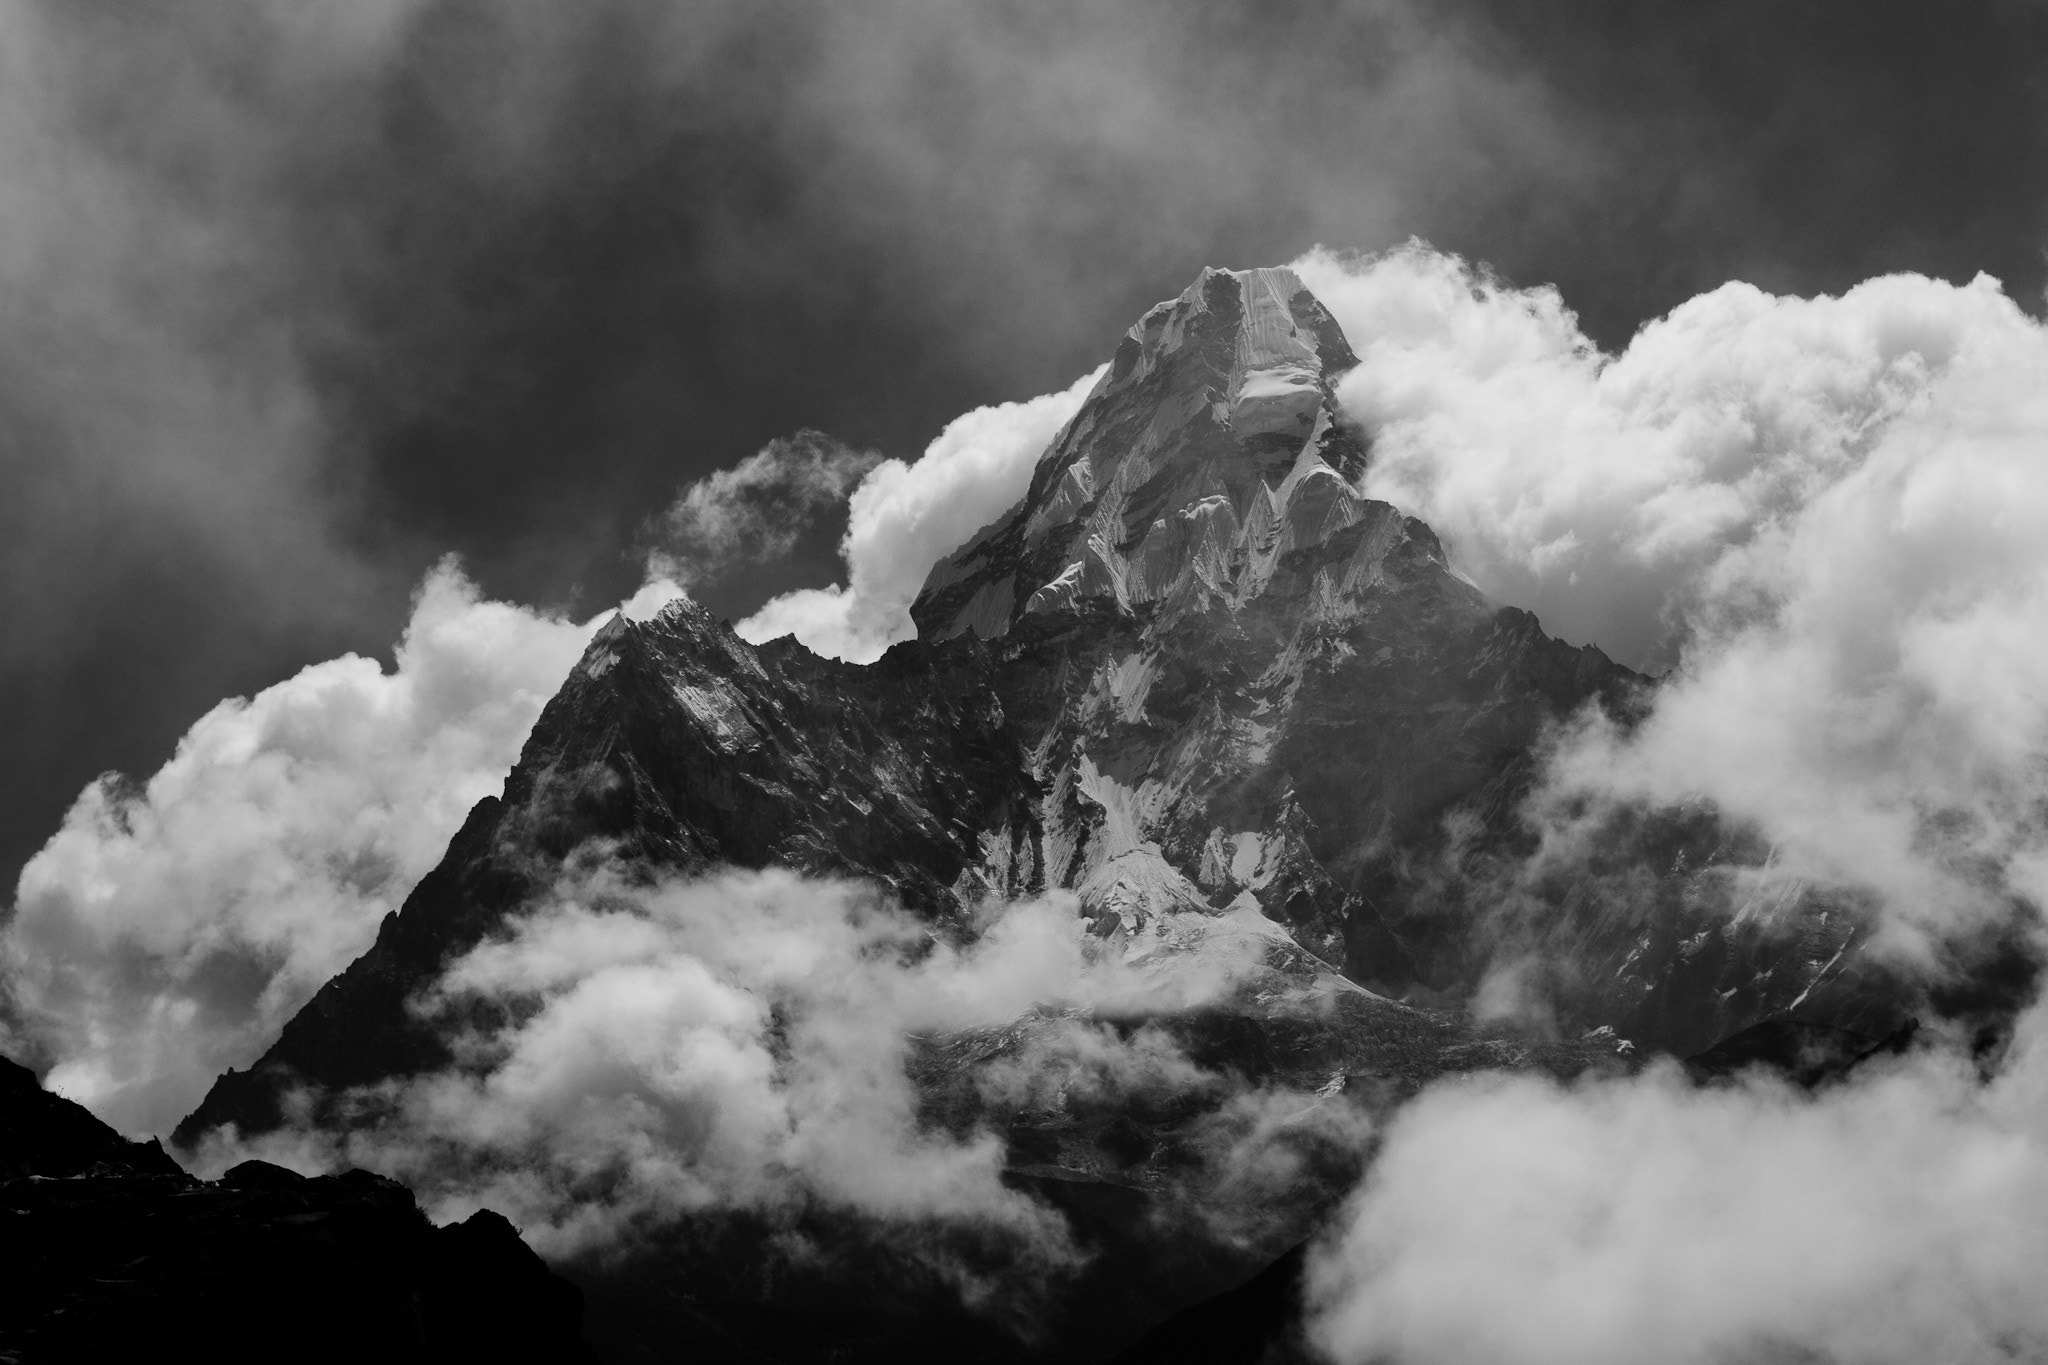 Photograph Ama Dablam Appears by Tristan Rayner on 500px